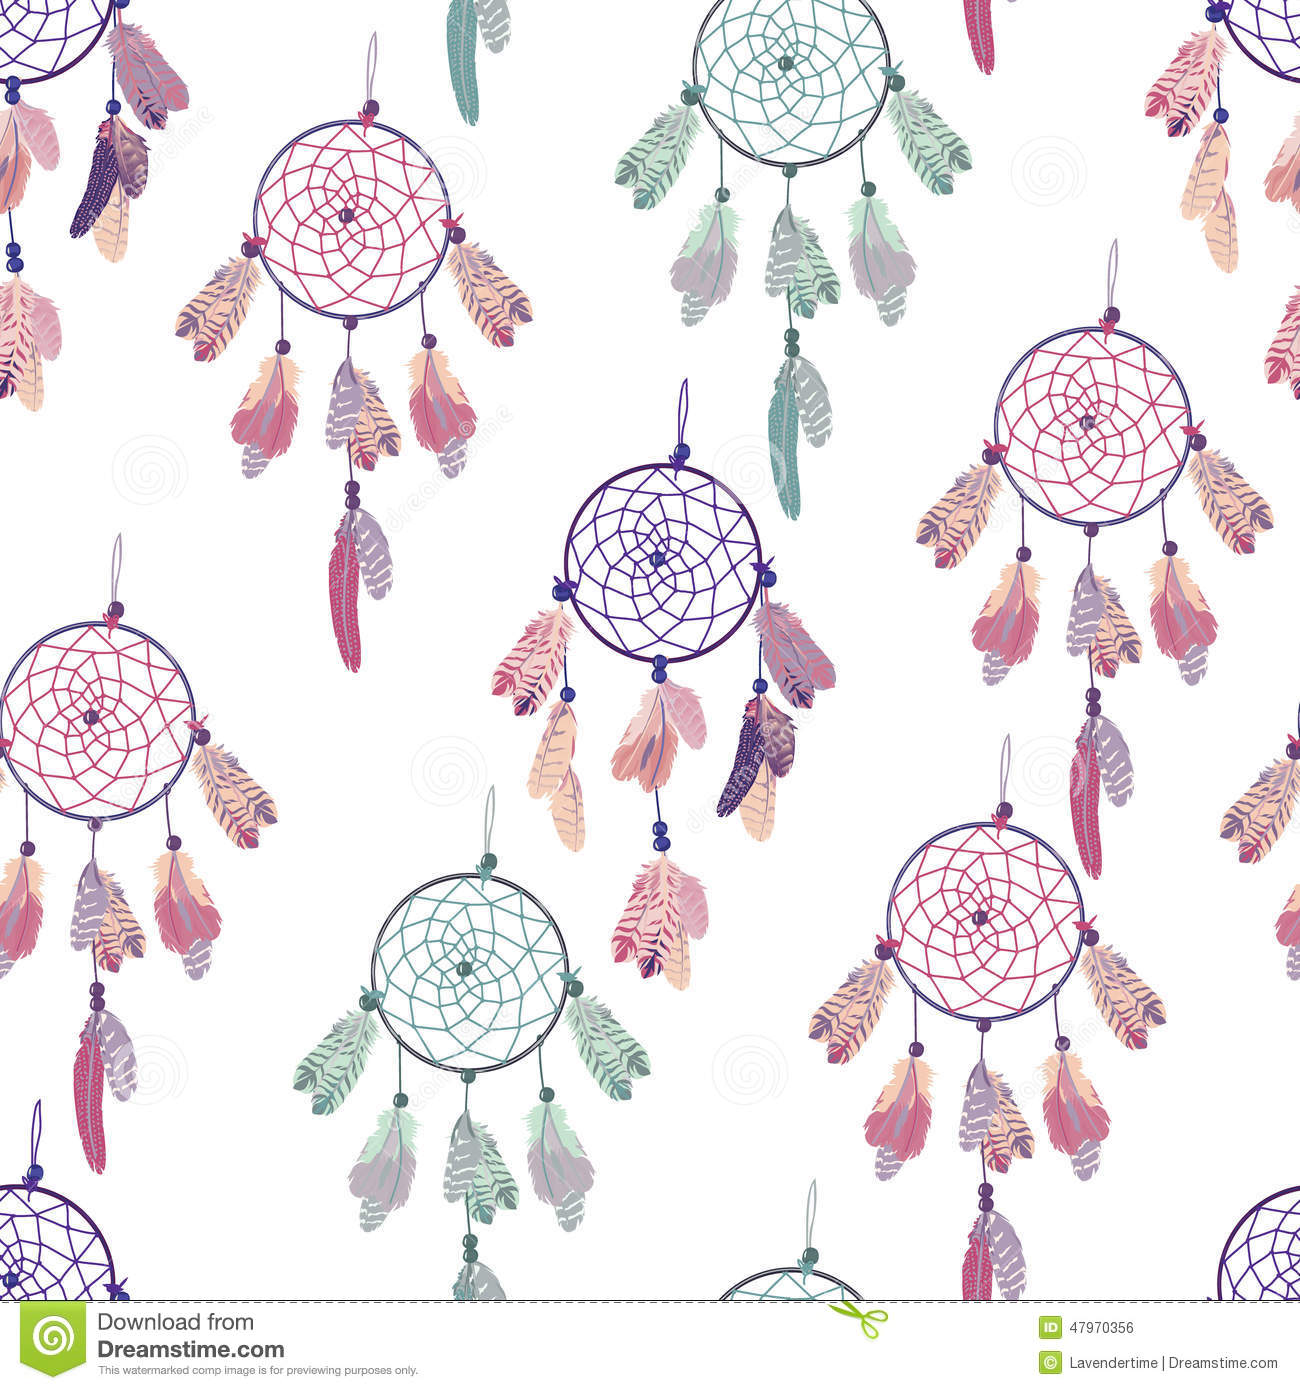 Europe Royal Ladies Fashion further Cube Pattern Seamless Tile Magenta 405259 additionally Stock Illustration Pastel Colored Dream Catchers Vector Seamless Background Eps Image47970356 as well Feather Pattern Hair3 as well Hunter Feather Pattern And Sea Cow. on feather pattern